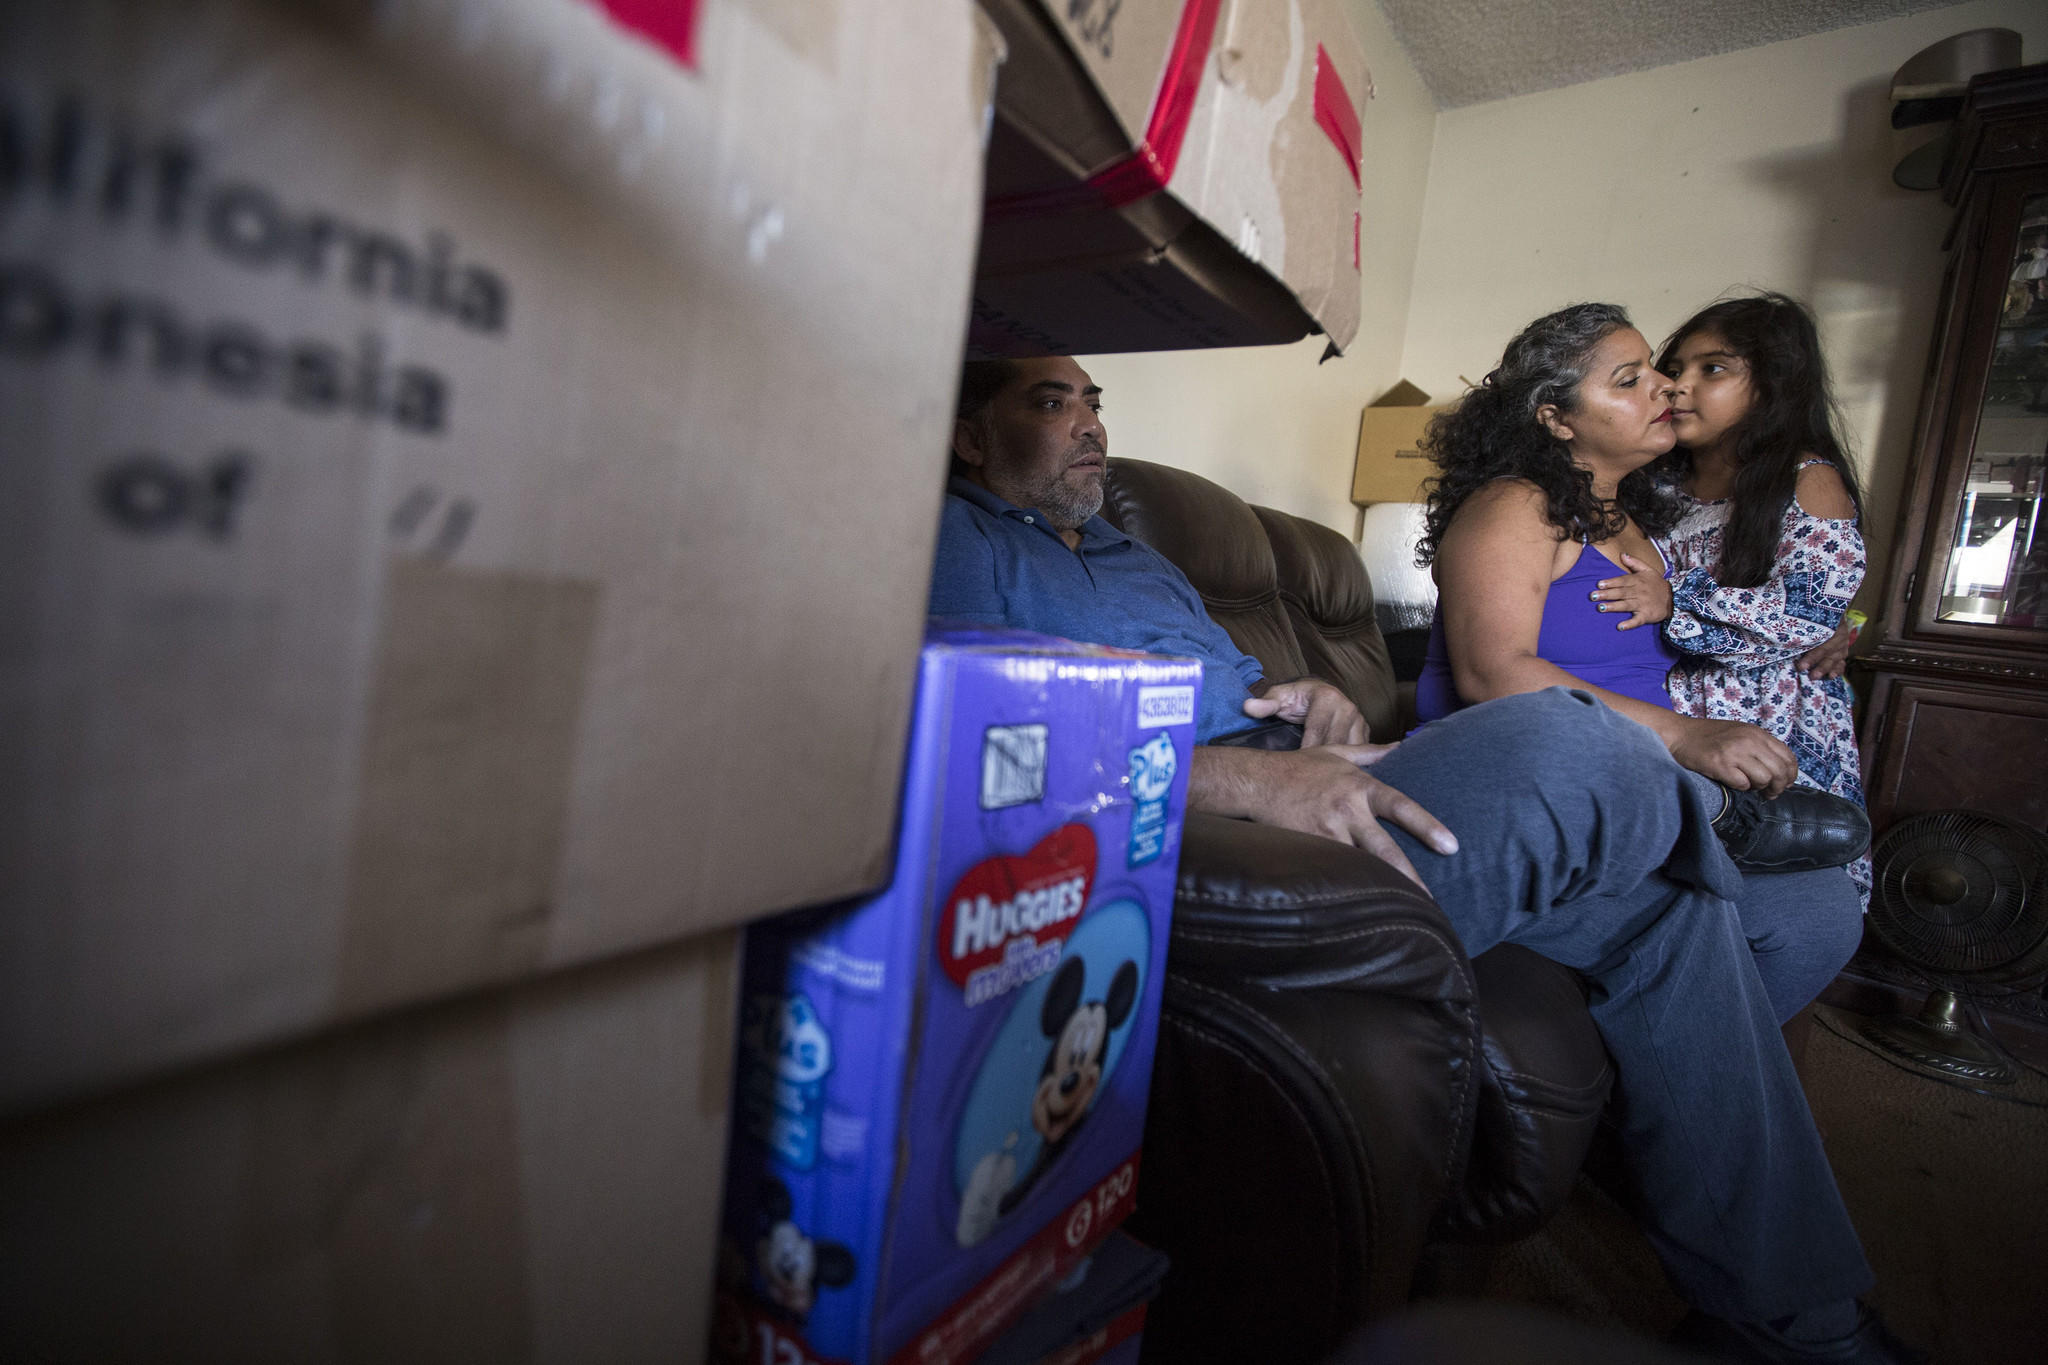 Ricardo Madrigal and his wife, Maria Barrancas, and their daughter Luz, 6, relax in their apartment after packing up their belongings.